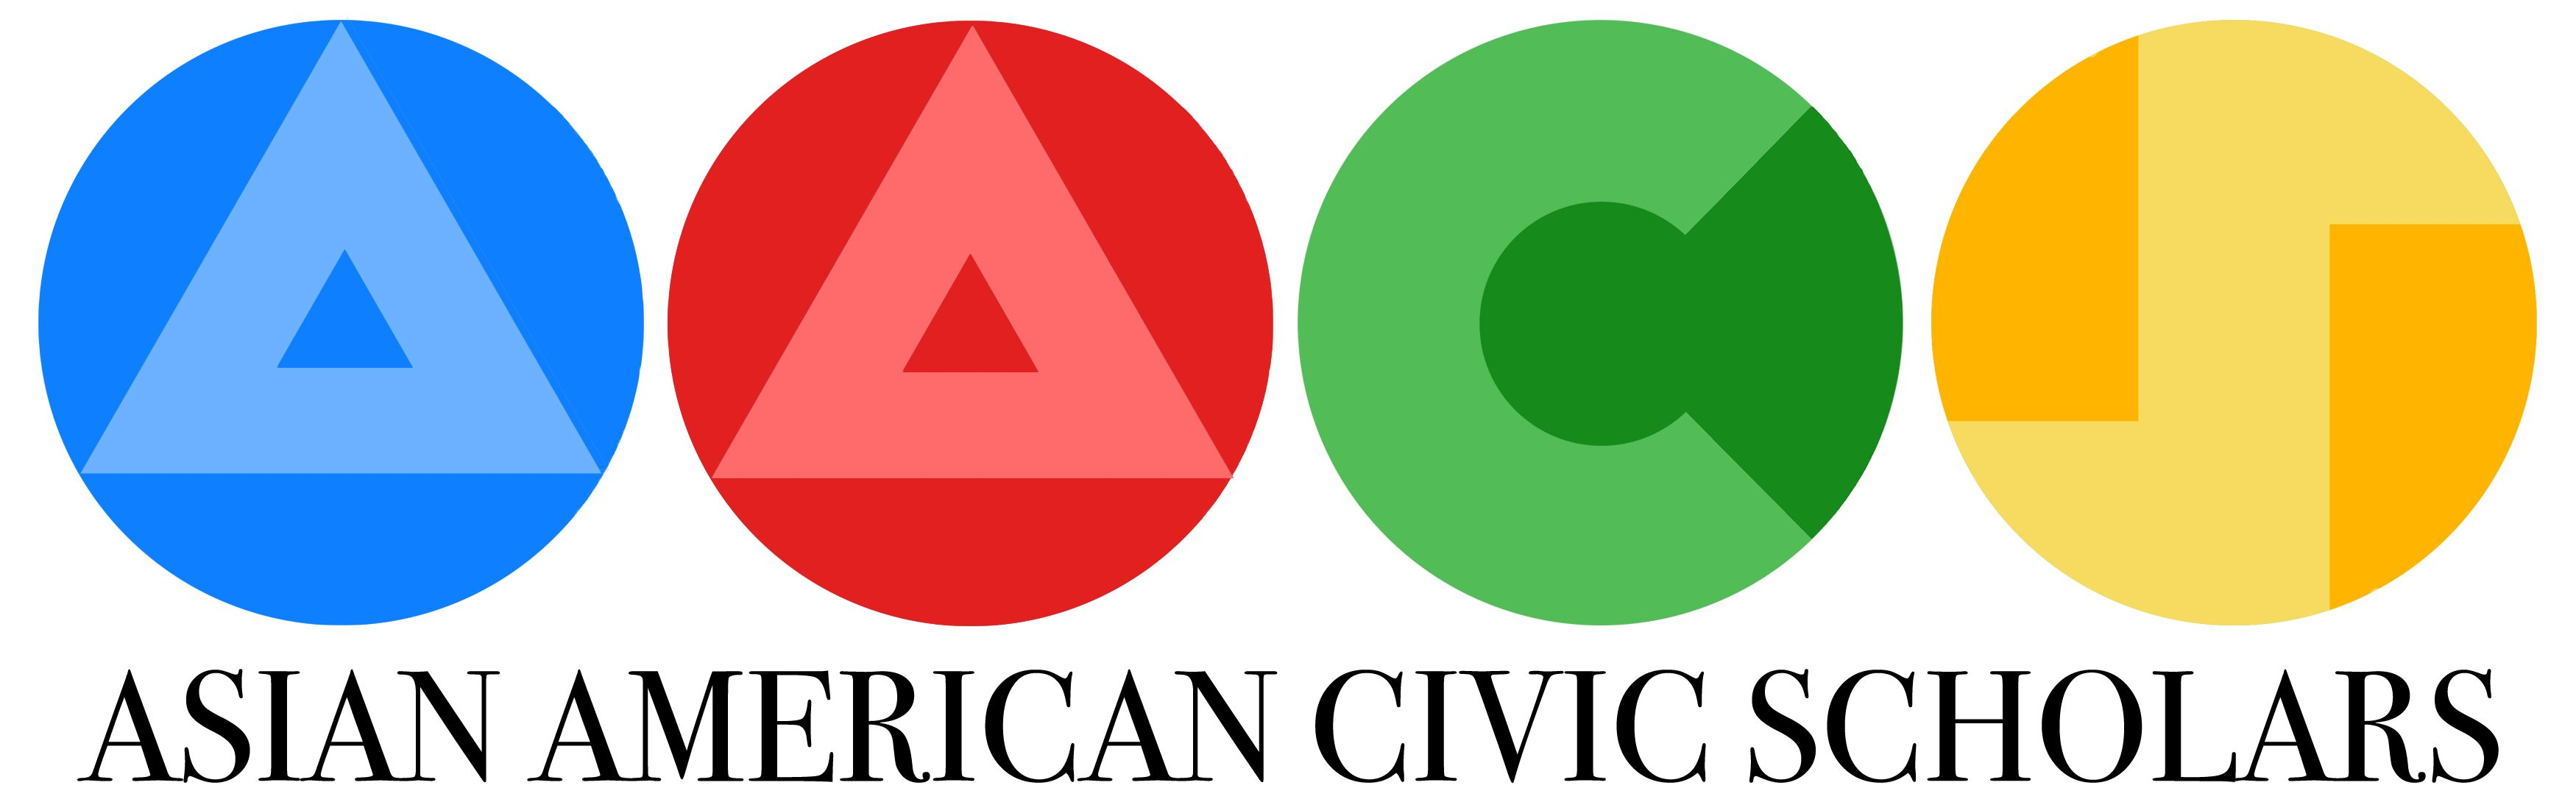 Asian American Civic Scholars